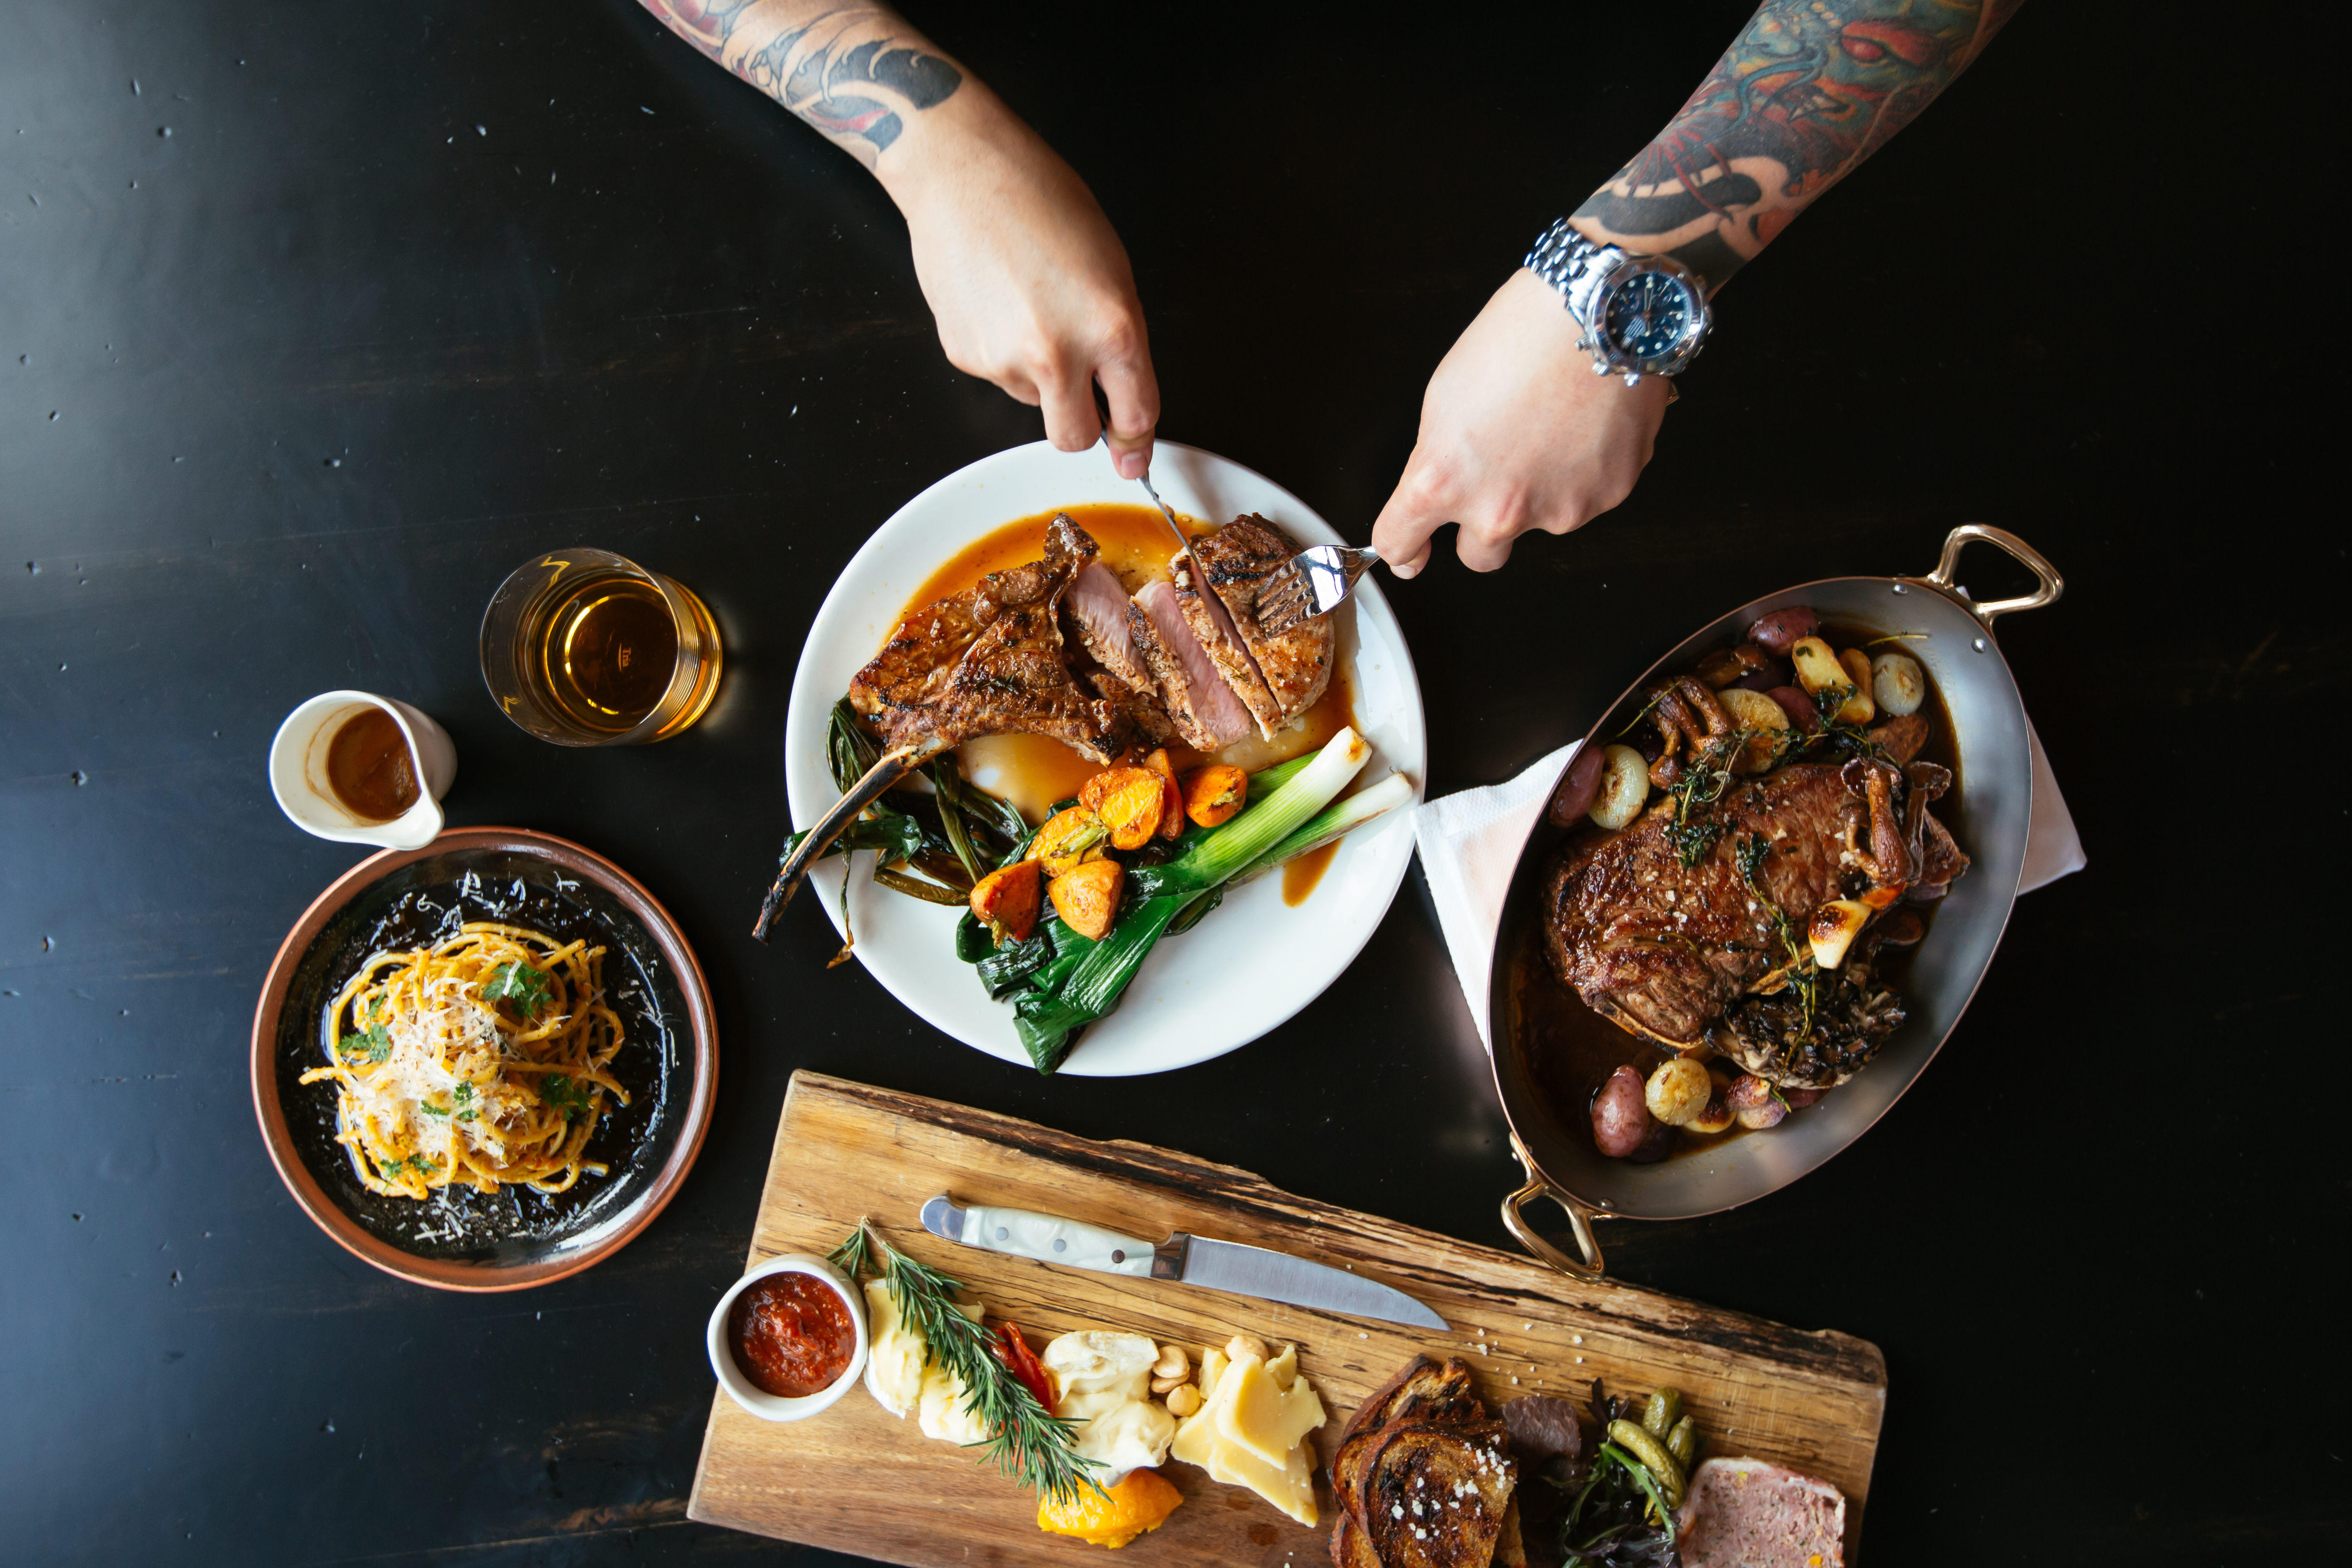 A Steak & Whisky spread (clockwise from left): bucatini; smoked duroc pork chop; rib eye; and a charcuterie/cheese board. Photo by Lanewood Studio